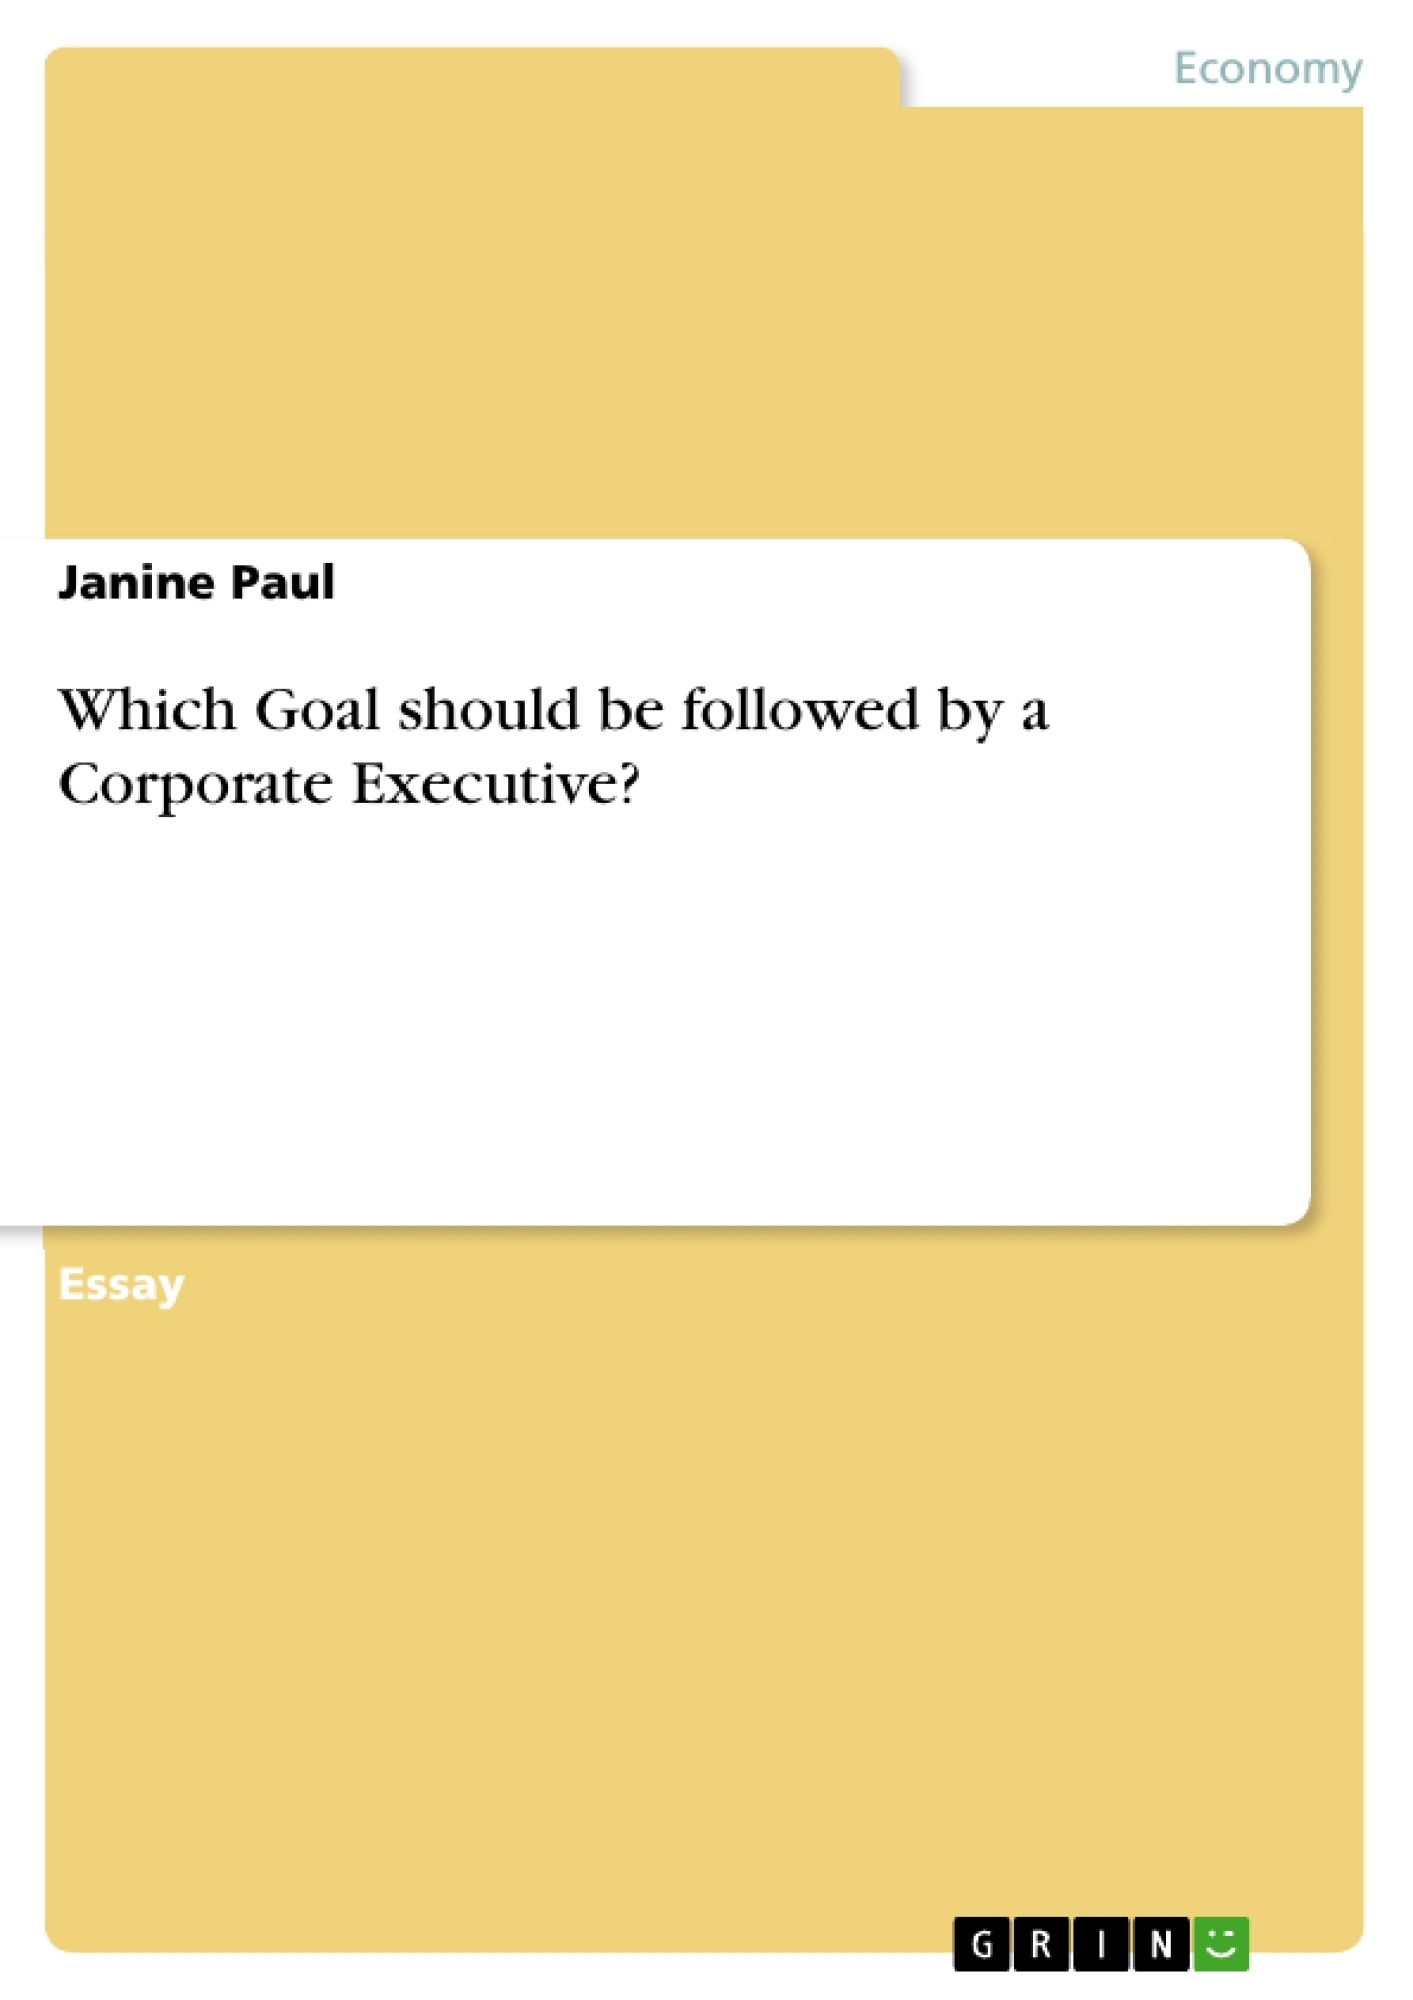 Title: Which Goal should be followed by a Corporate Executive?